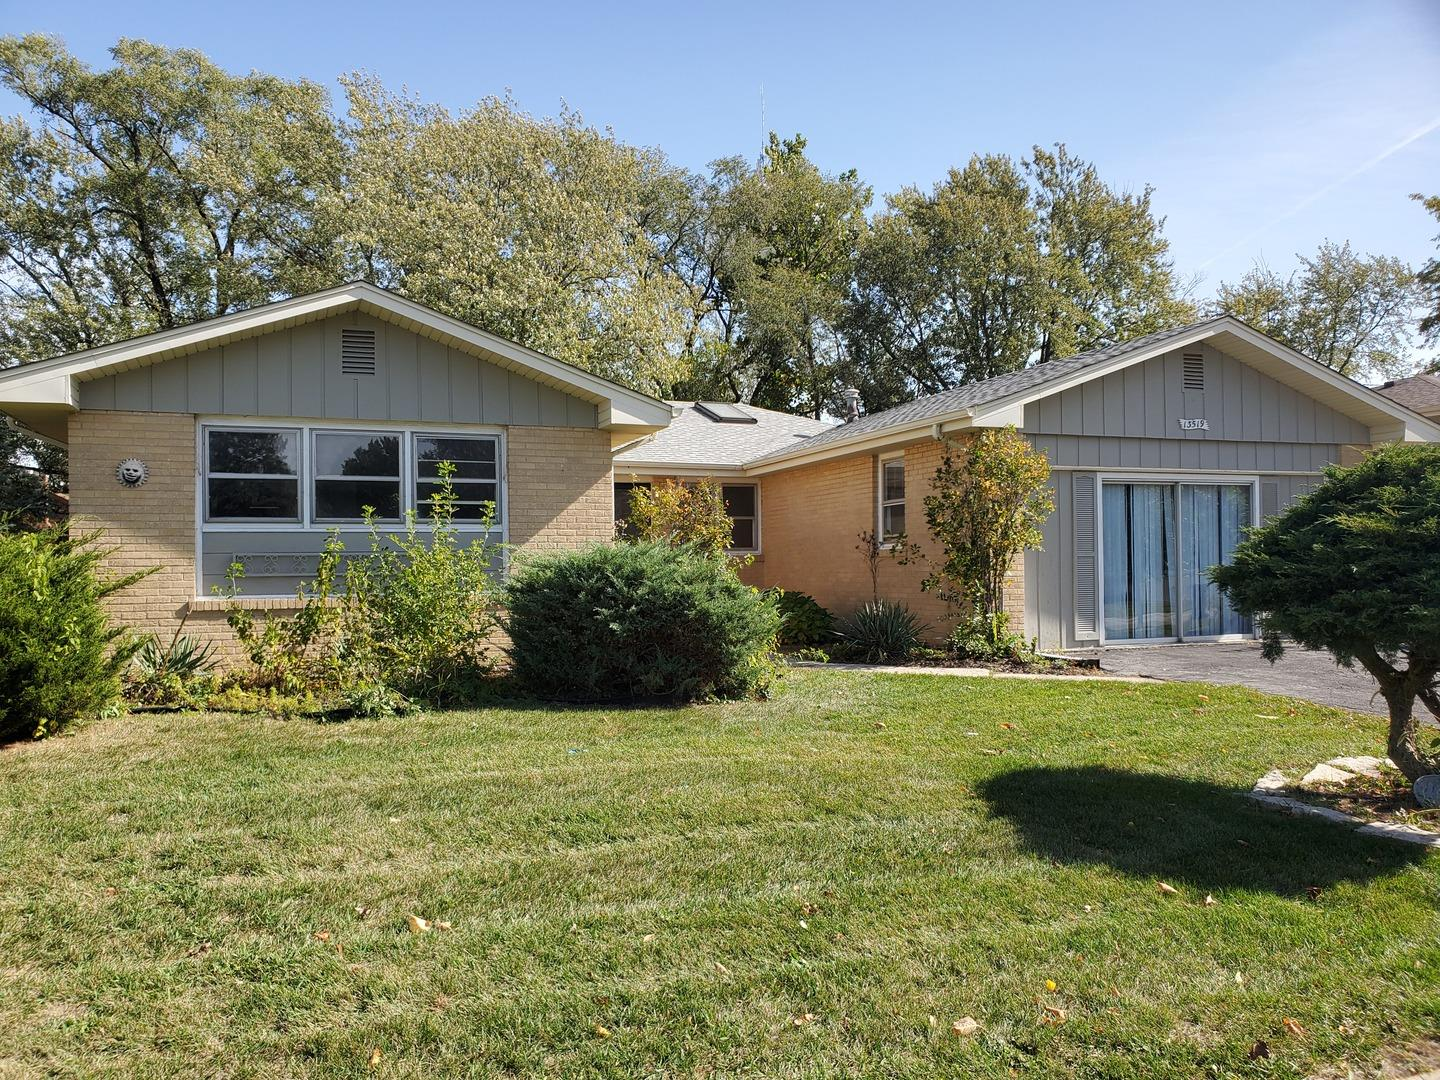 13519 S 85th Avenue, Orland Park, IL 60462 - #: 10905596